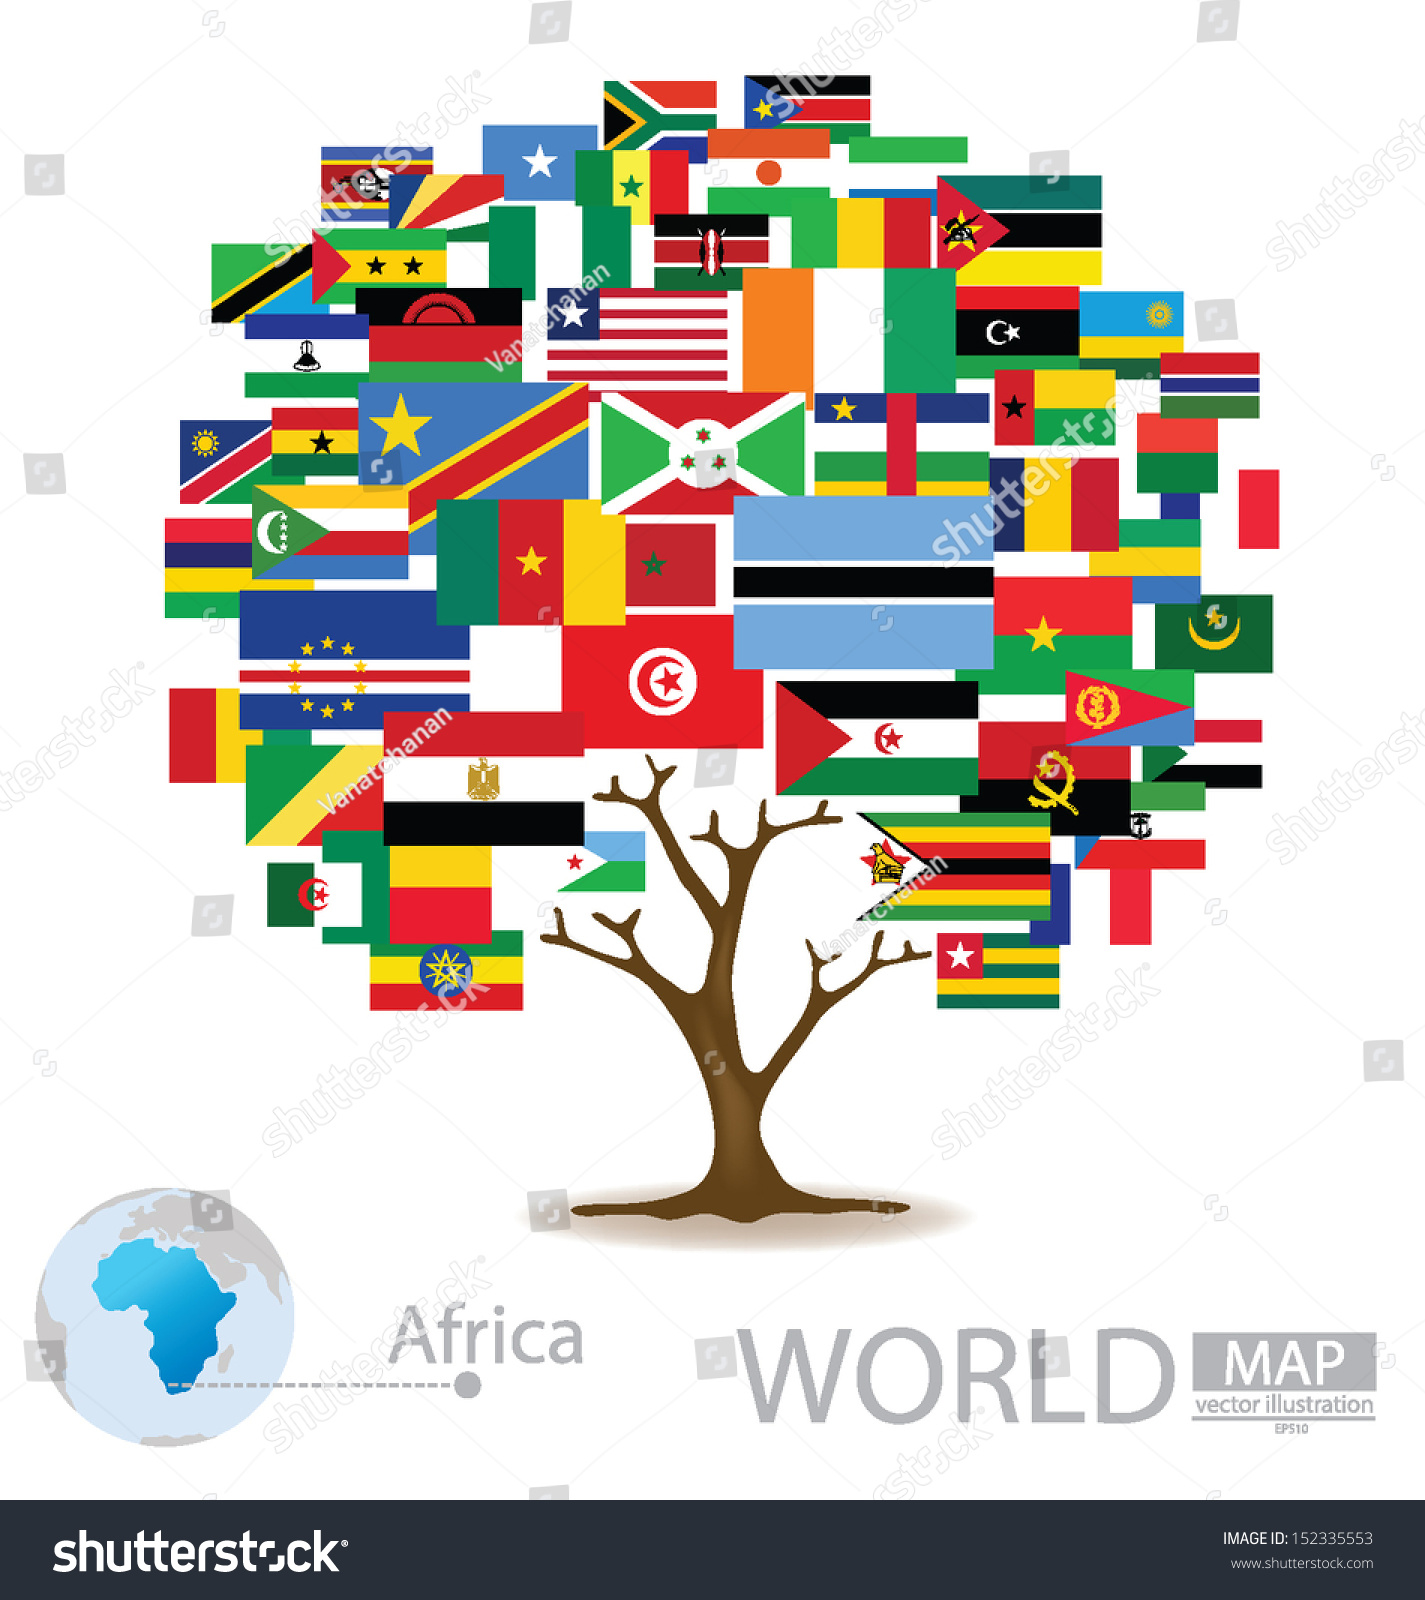 Tree design countries africa flag world stock vector 152335553 countries in africa flag world map vector illustration gumiabroncs Images